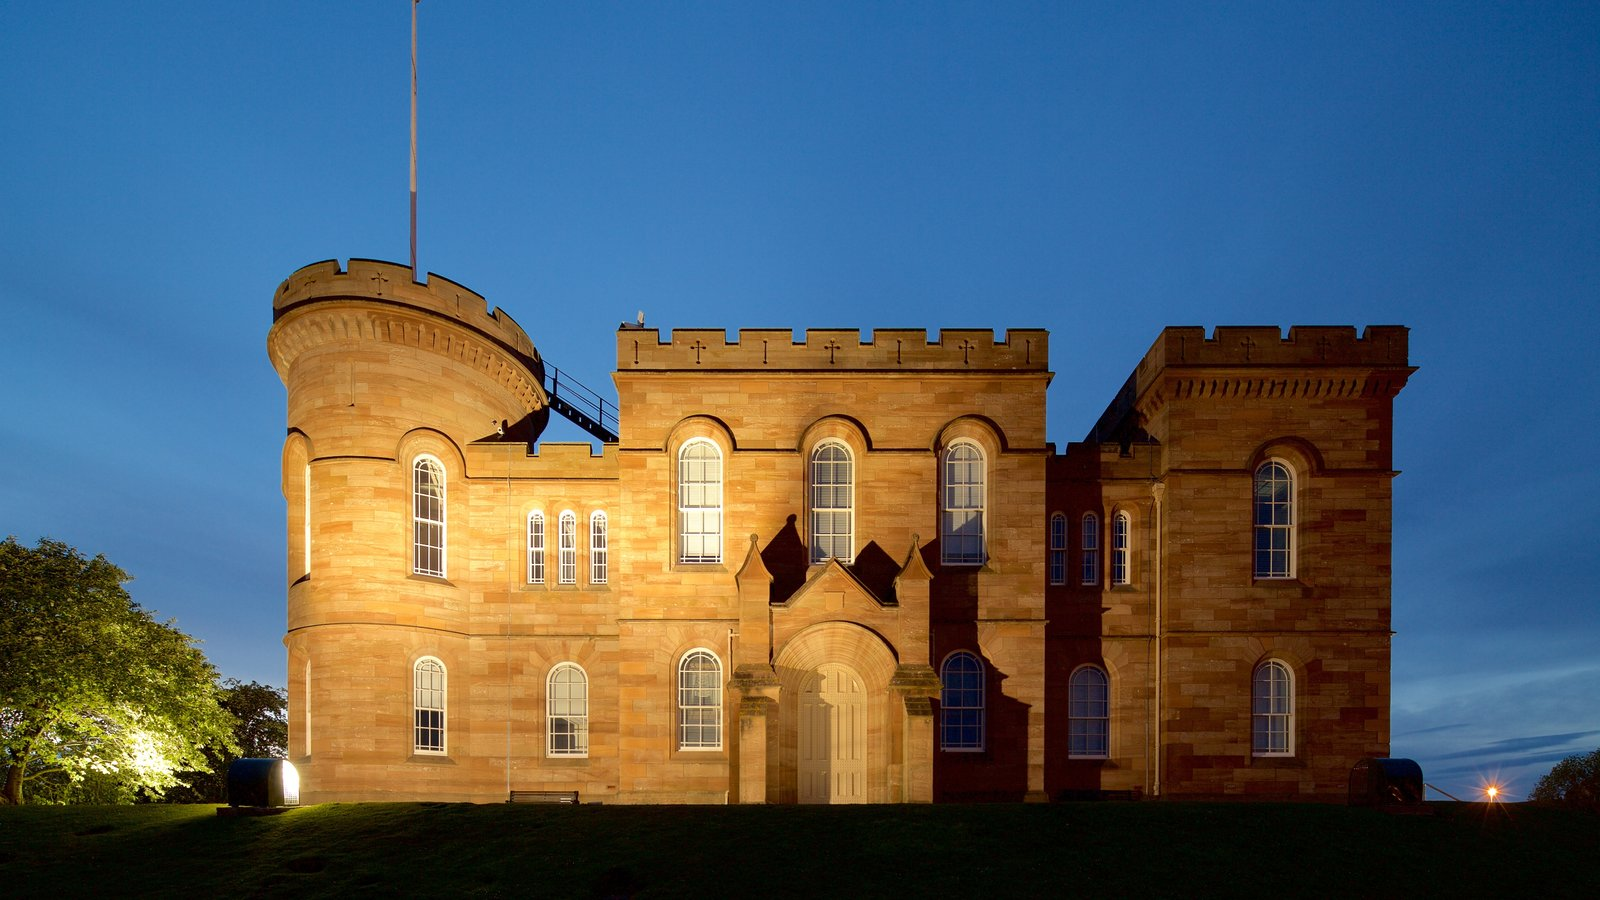 Inverness Castle showing heritage elements, night scenes and chateau or palace